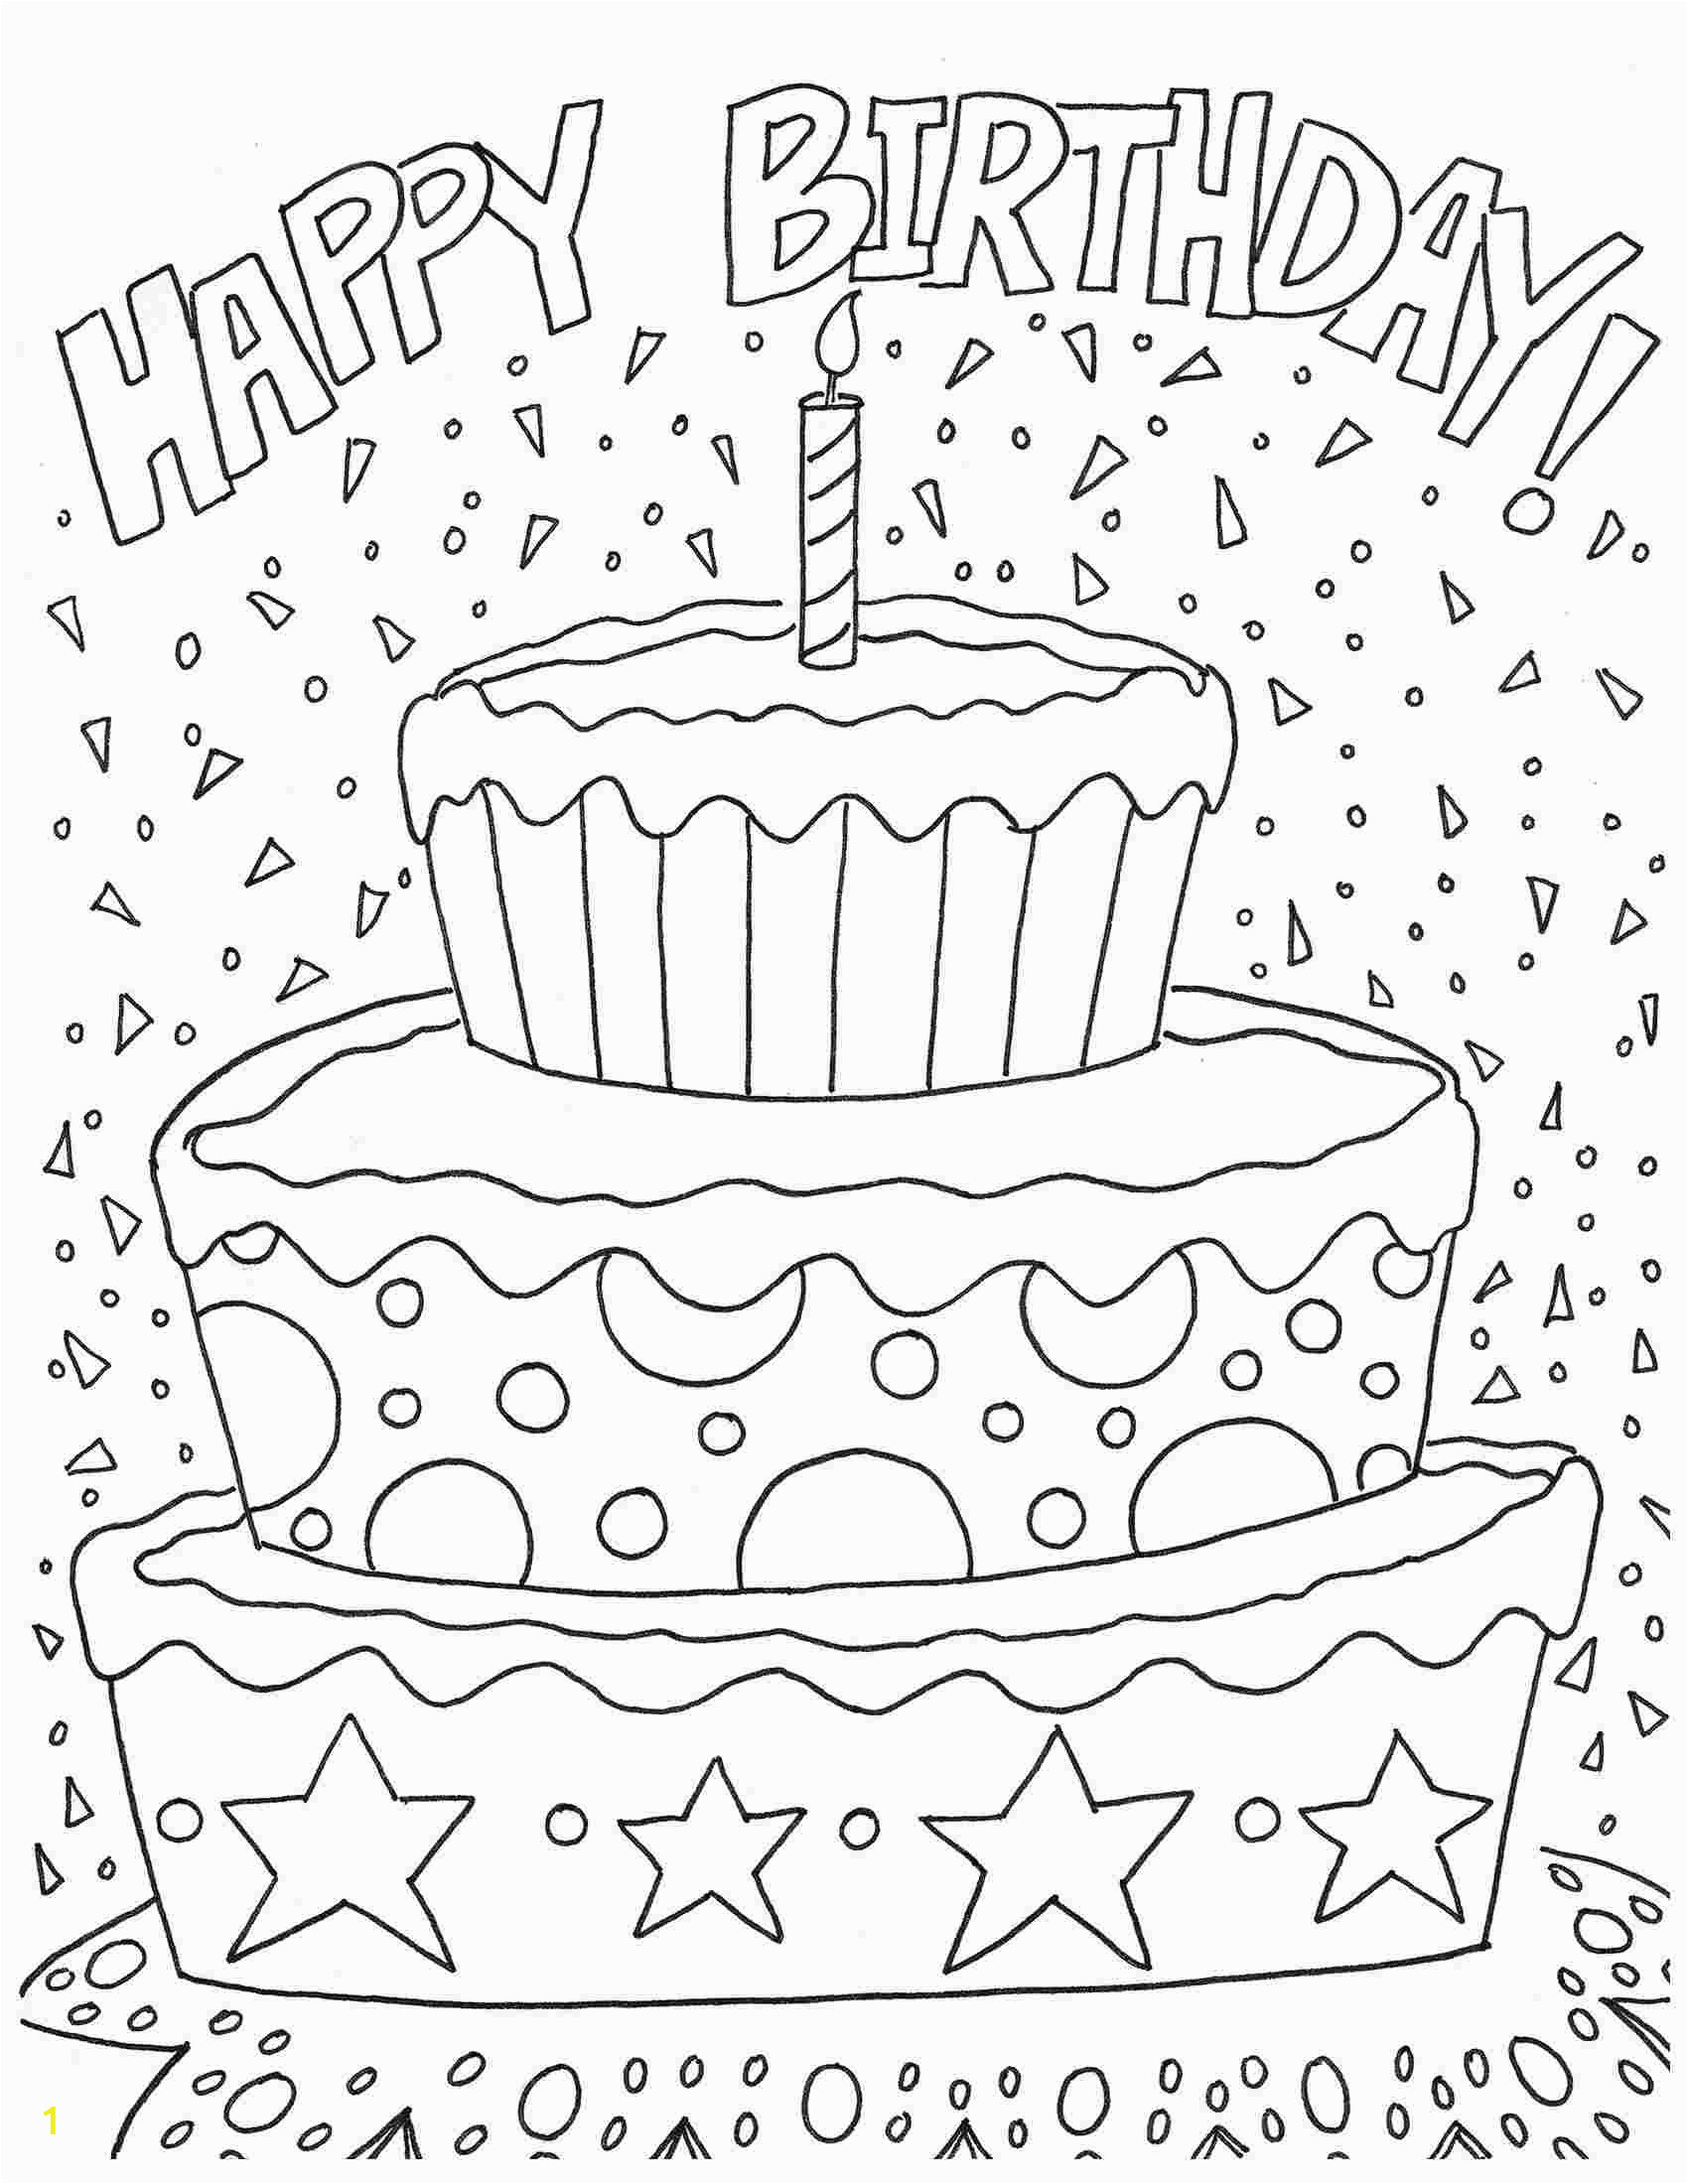 printable colouring happy birthday cards happy birthday colouring card other holidays coloring colouring printable birthday cards happy